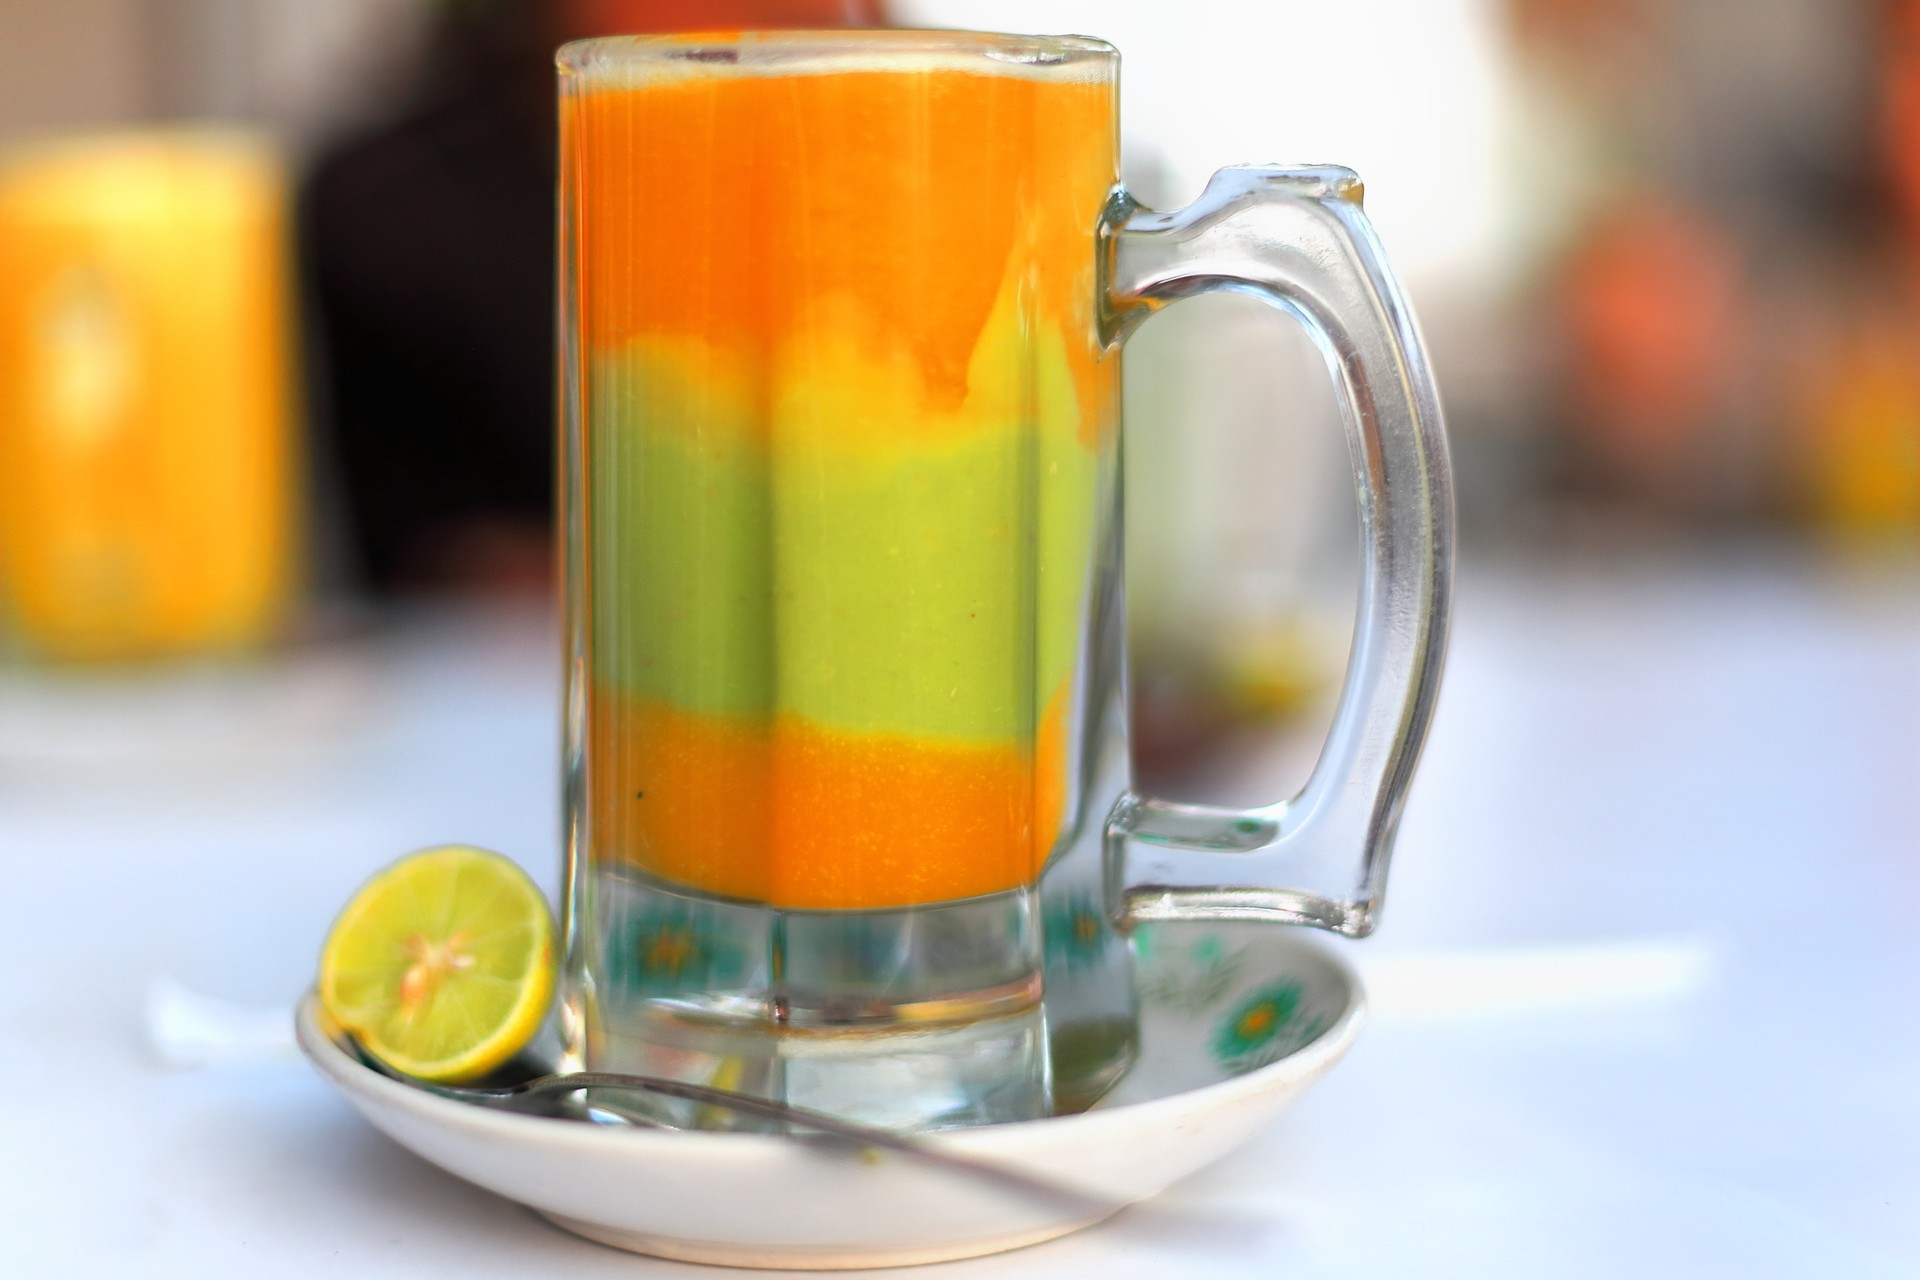 Layered fruit drink in Ethiopia